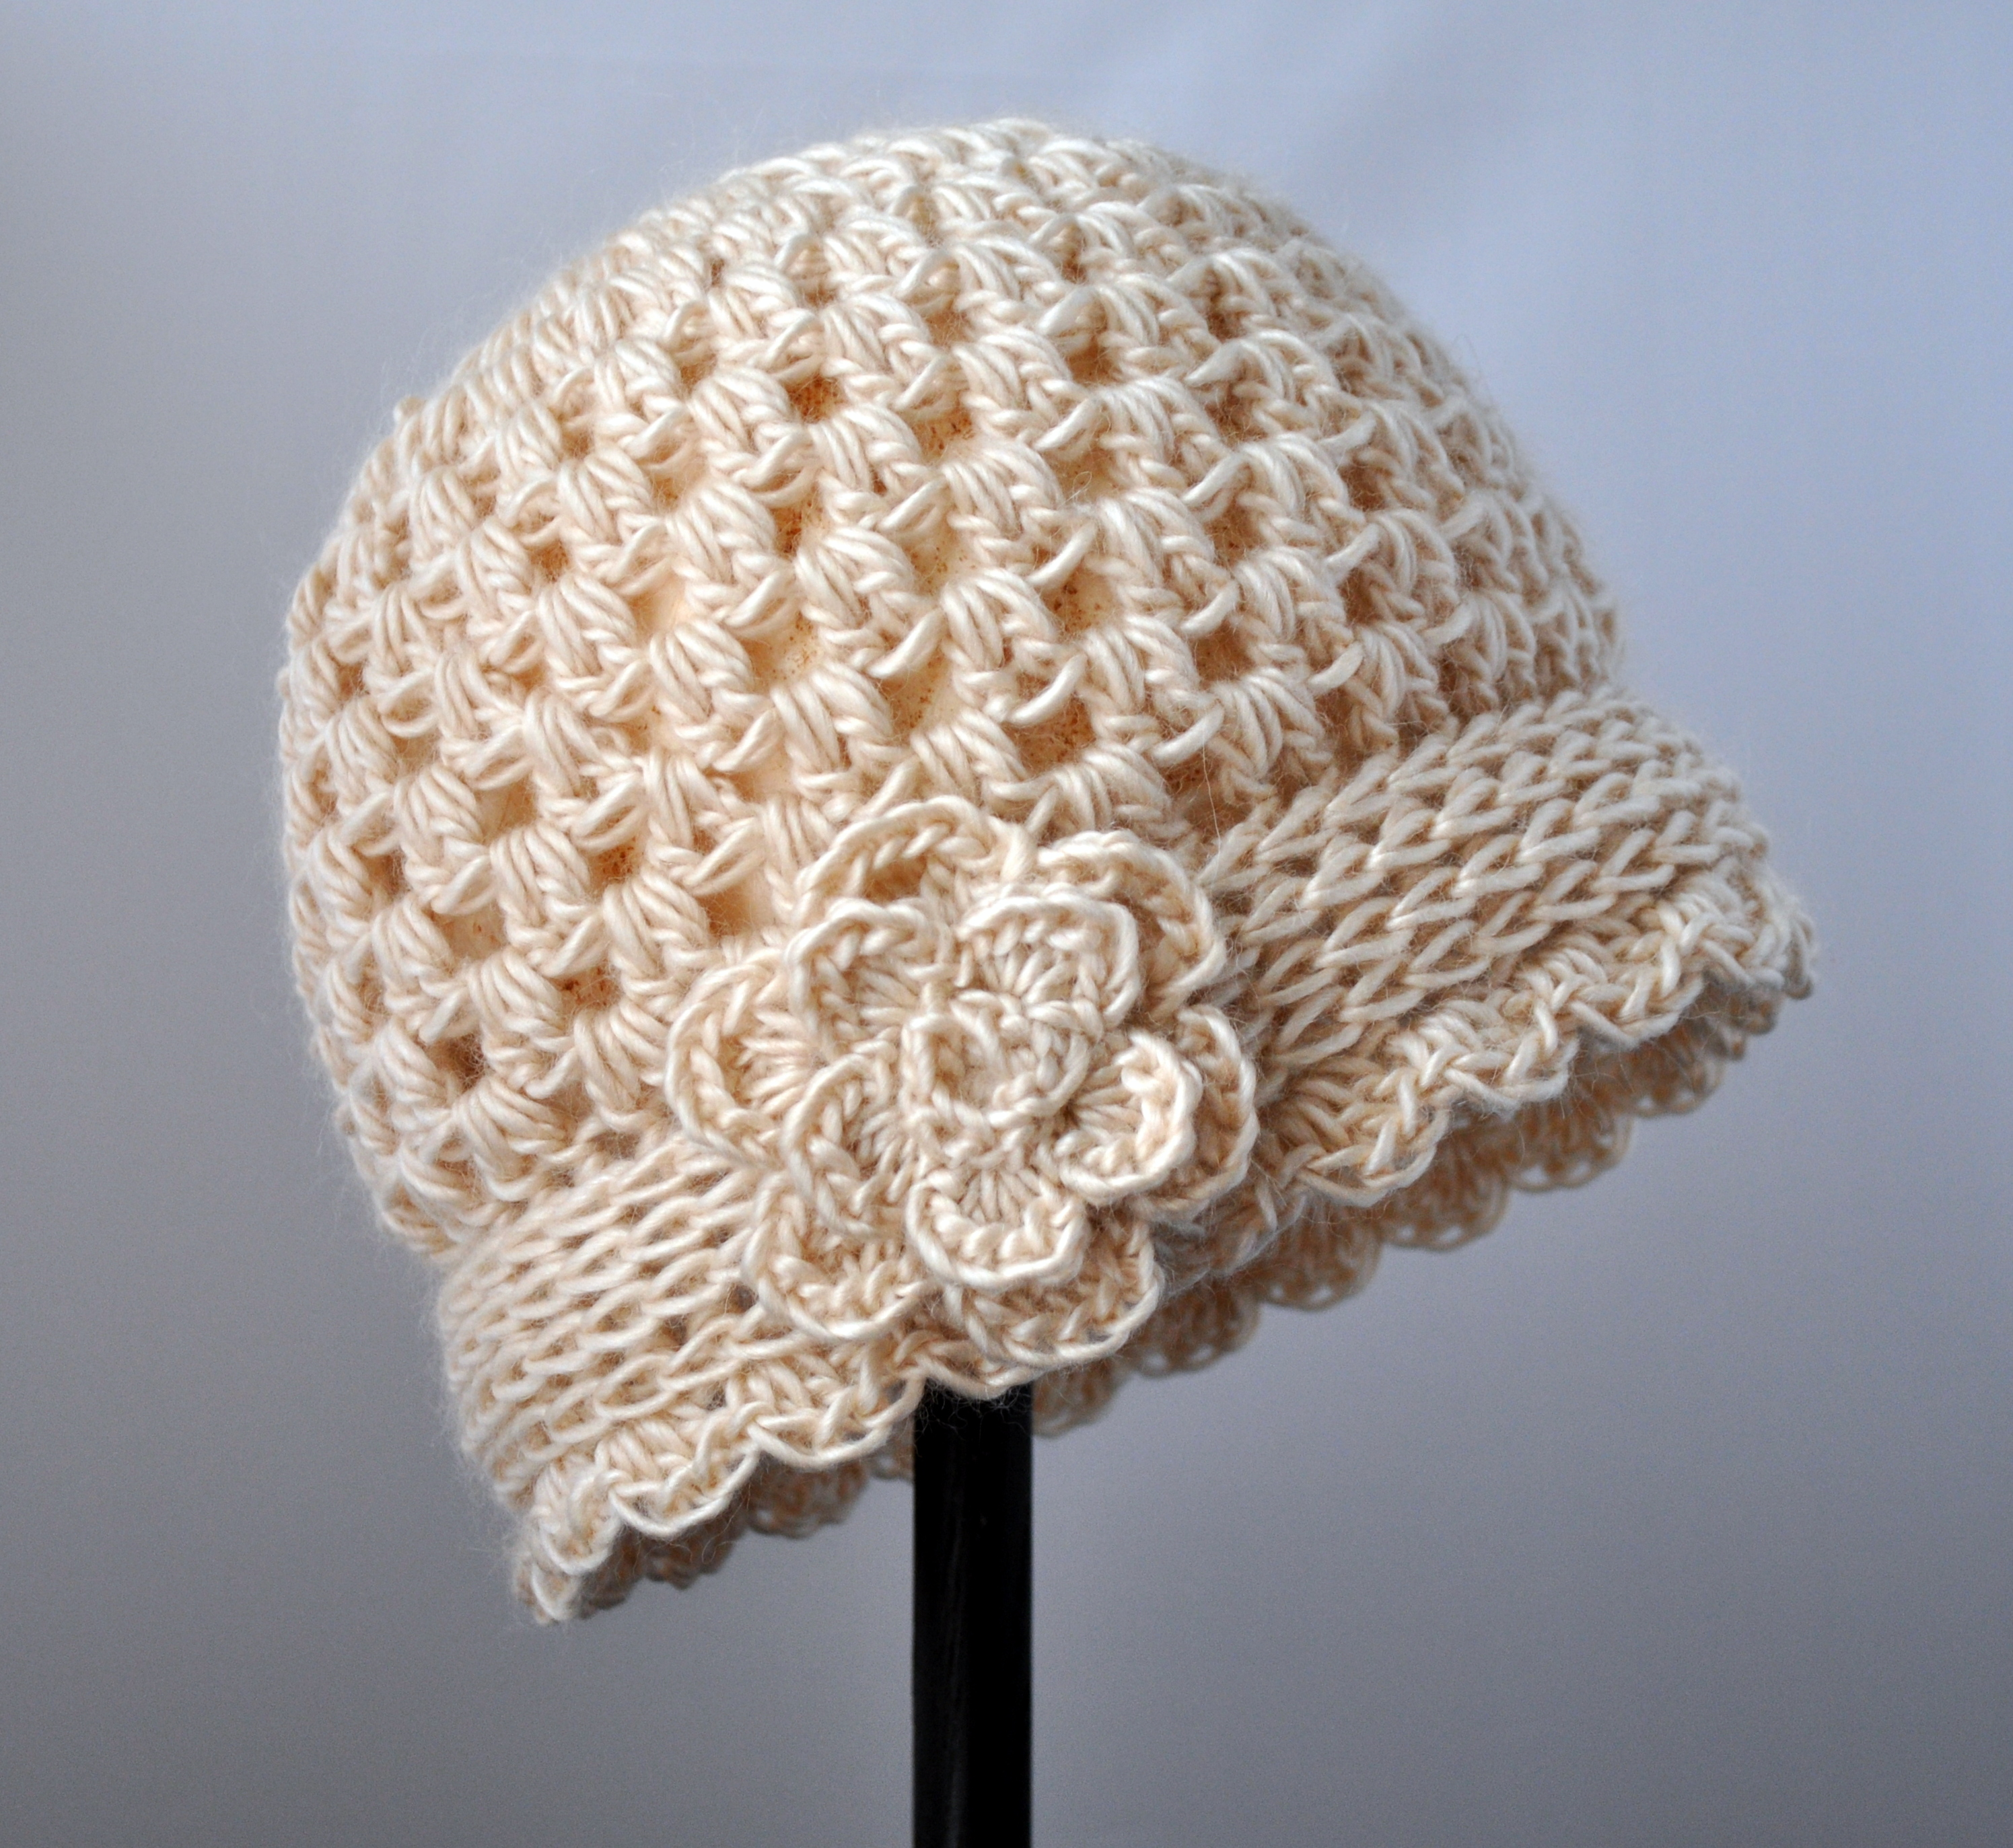 Crocheting Hats : Crochet Vintage Flowered Cloche Pattern Classy Crochet